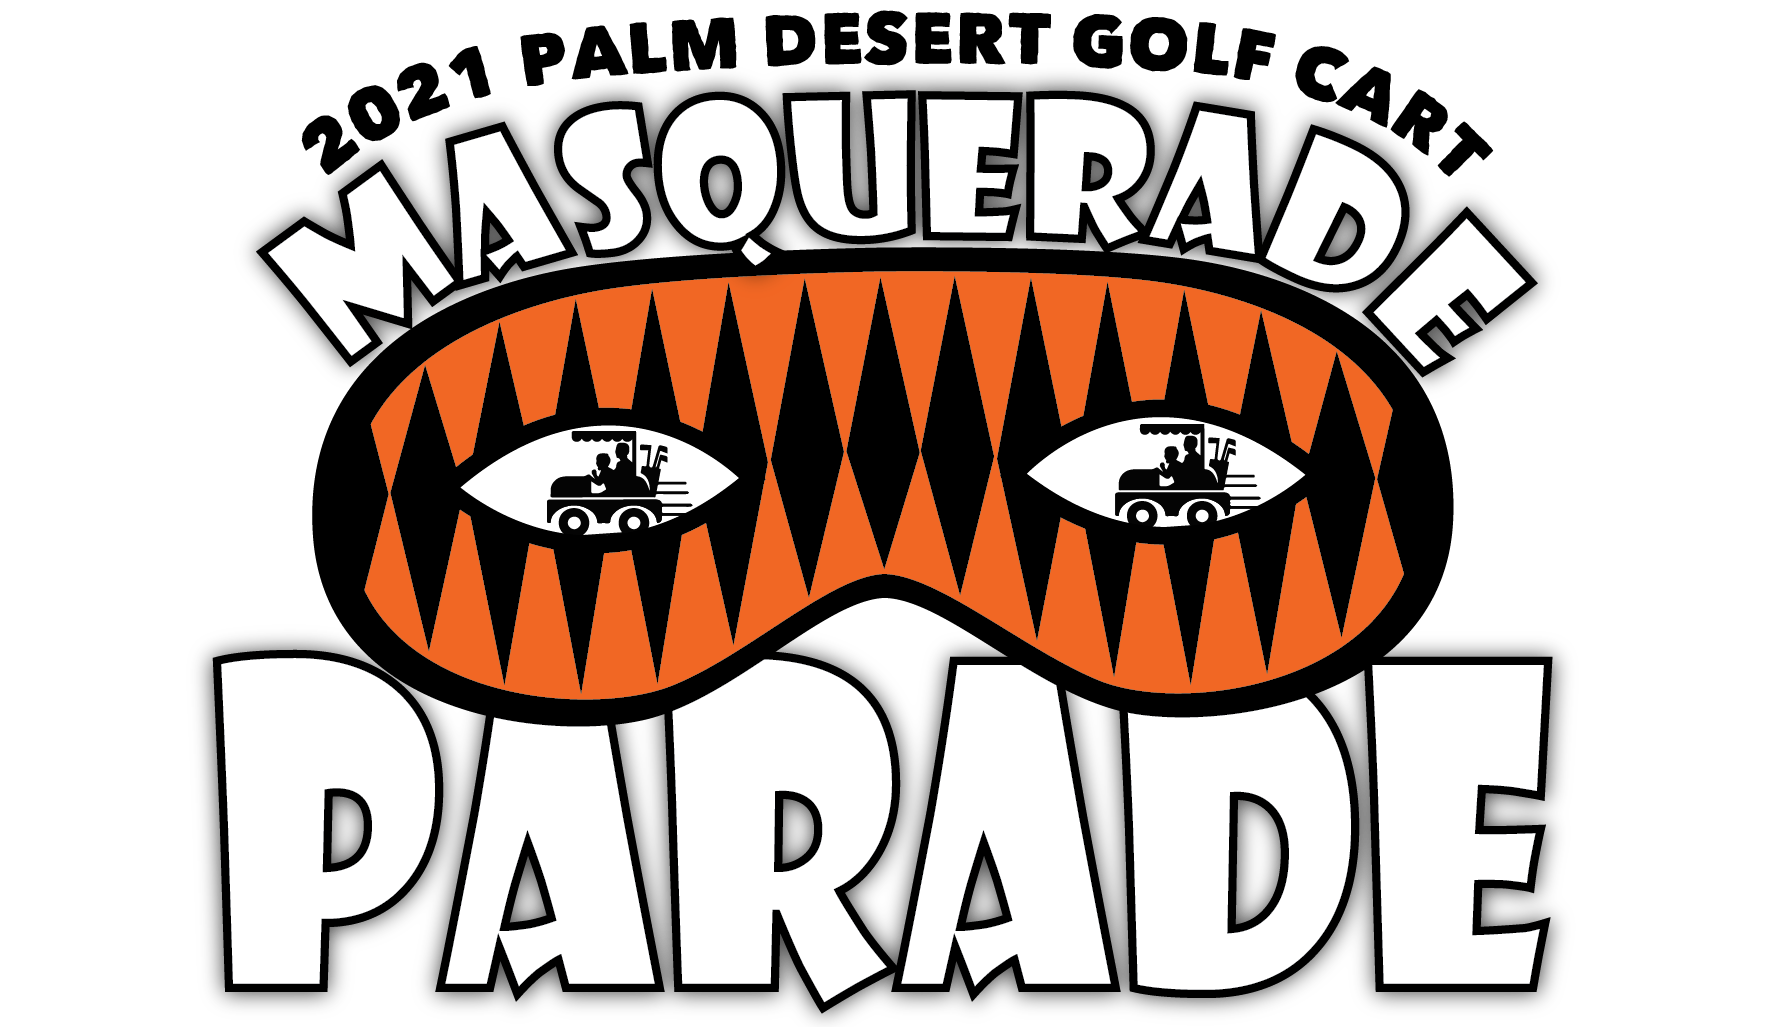 2021 Palm Desert Golf Cart Masquerade Parade.Yellow dotted backdrop.Orange and Black eye mask with black golf carts inside the eye openings.